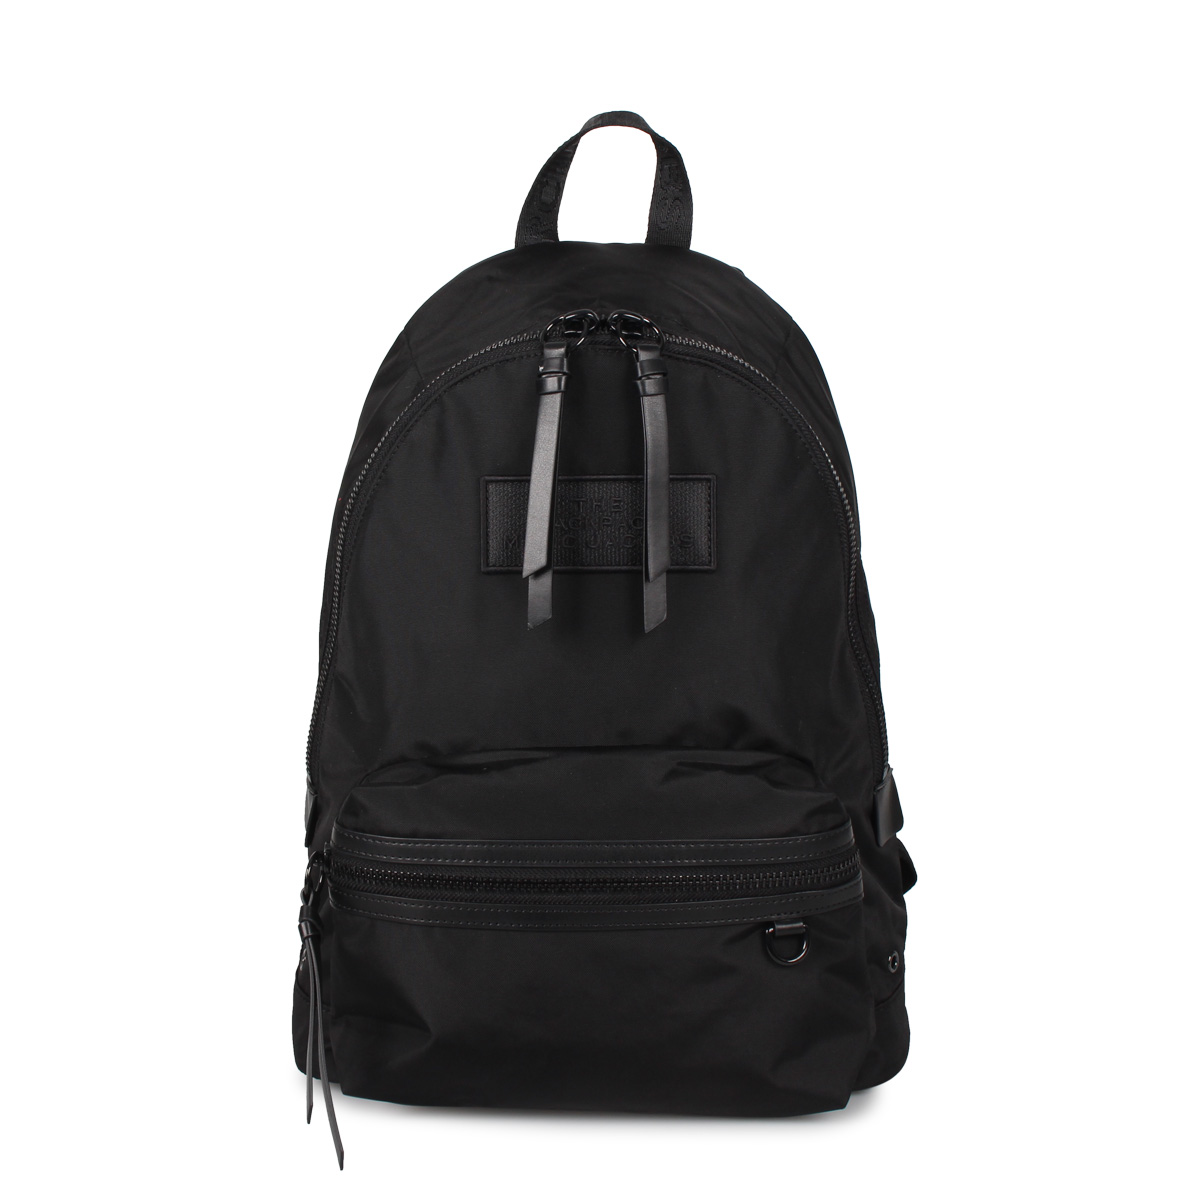 MARC JACOBS THE DTM BACKPACK LARGE BACKPACK マークジェイコブス リュック バッグ バックパック レディース ブラック 黒 M0015772-001